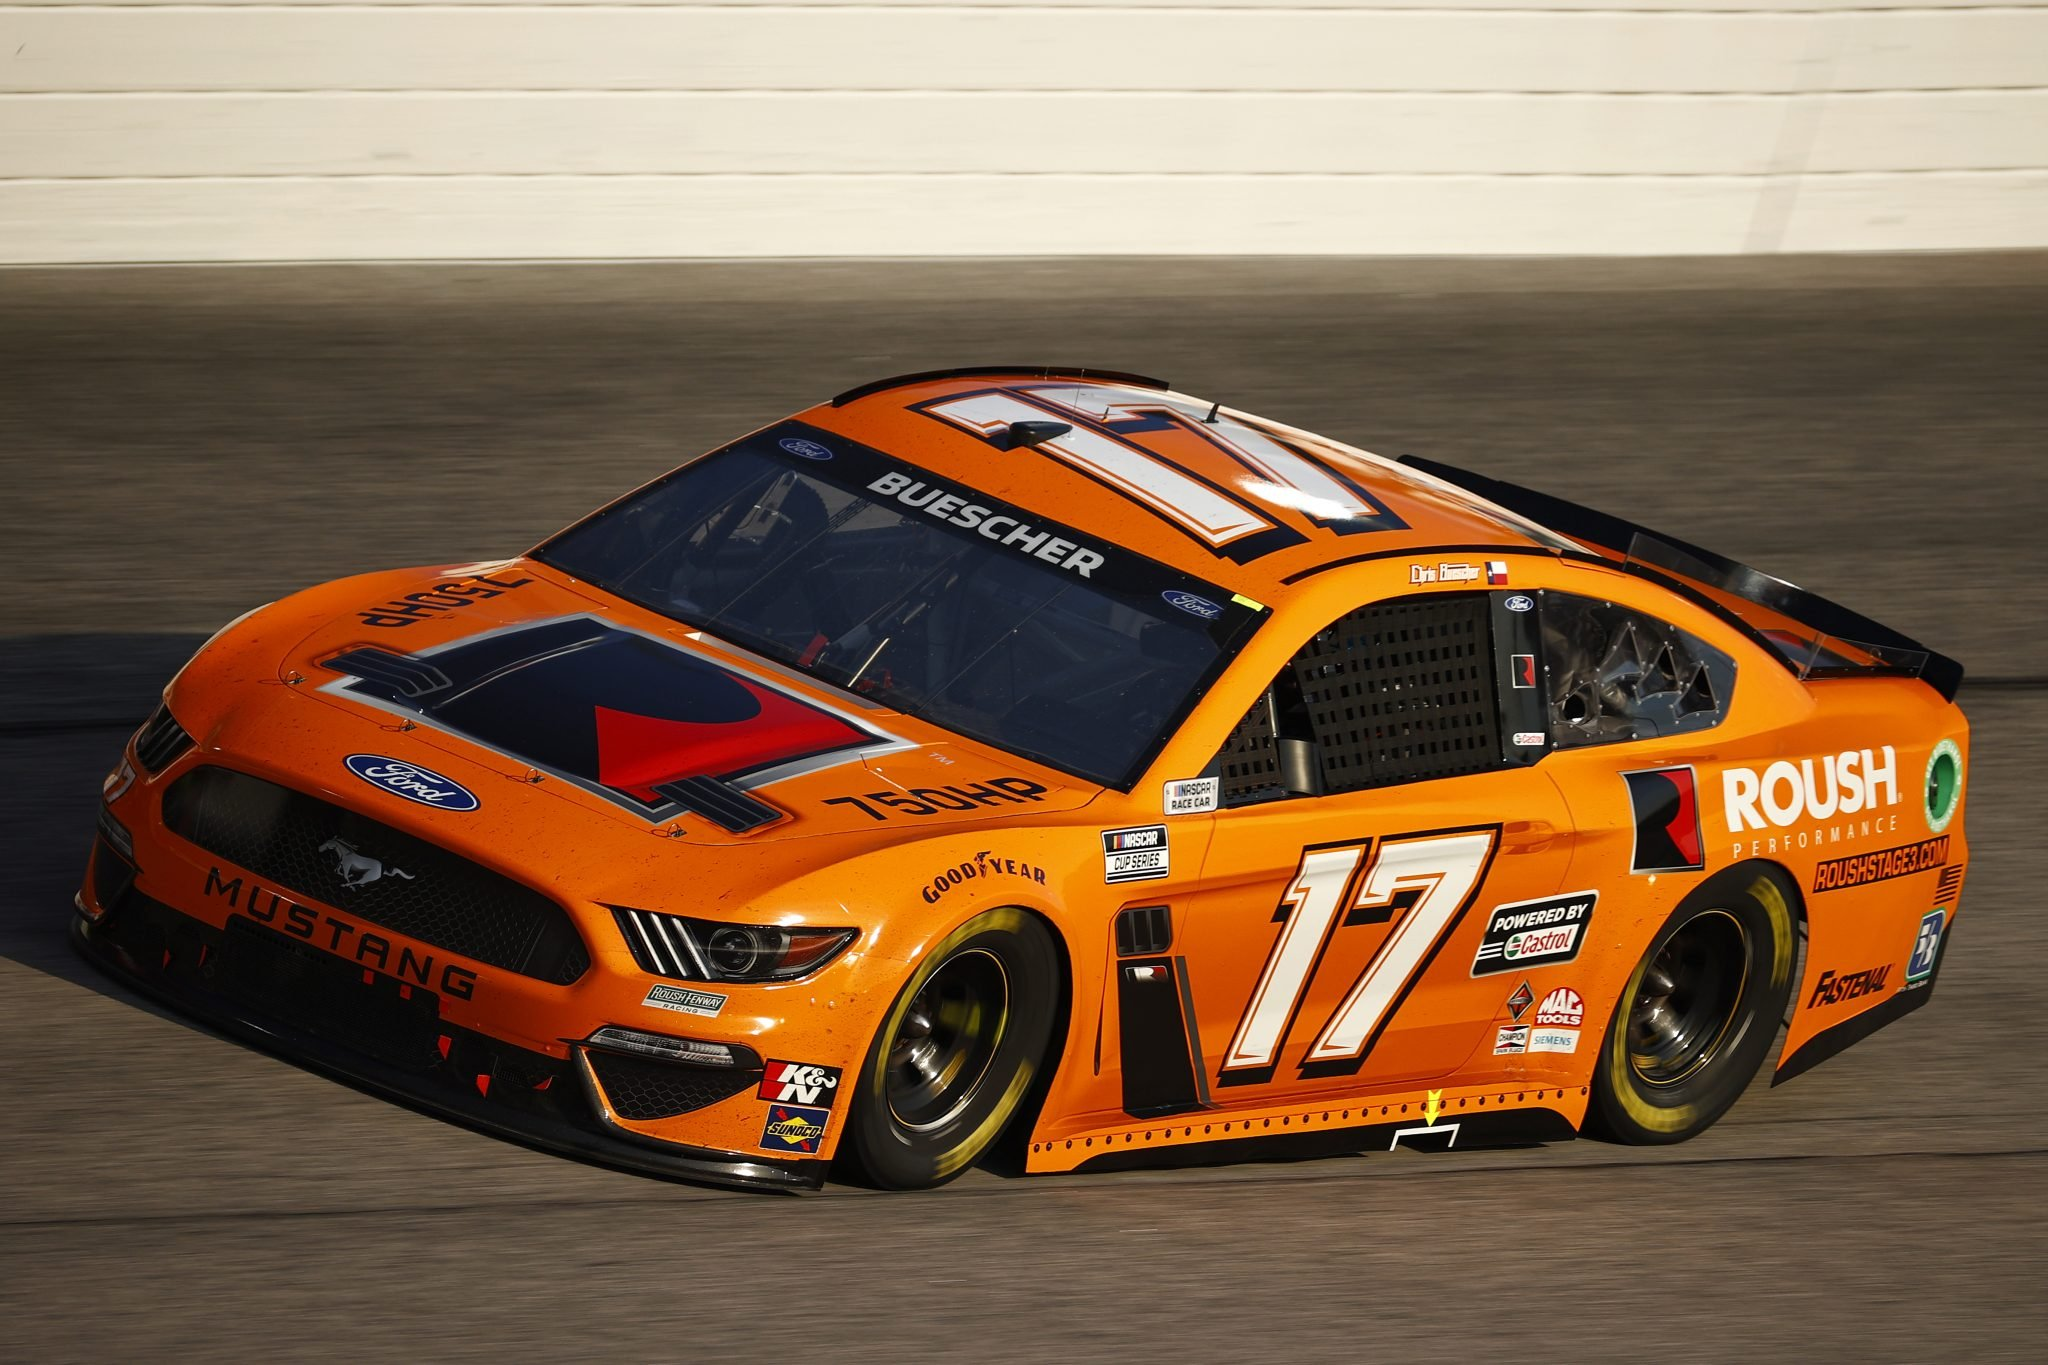 DARLINGTON, SOUTH CAROLINA - SEPTEMBER 05: Chris Buescher, driver of the #17 Roush Performance Ford, drives during the NASCAR Cup Series Cook Out Southern 500 at Darlington Raceway on September 05, 2021 in Darlington, South Carolina. (Photo by Jared C. Tilton/Getty Images) | Getty Images